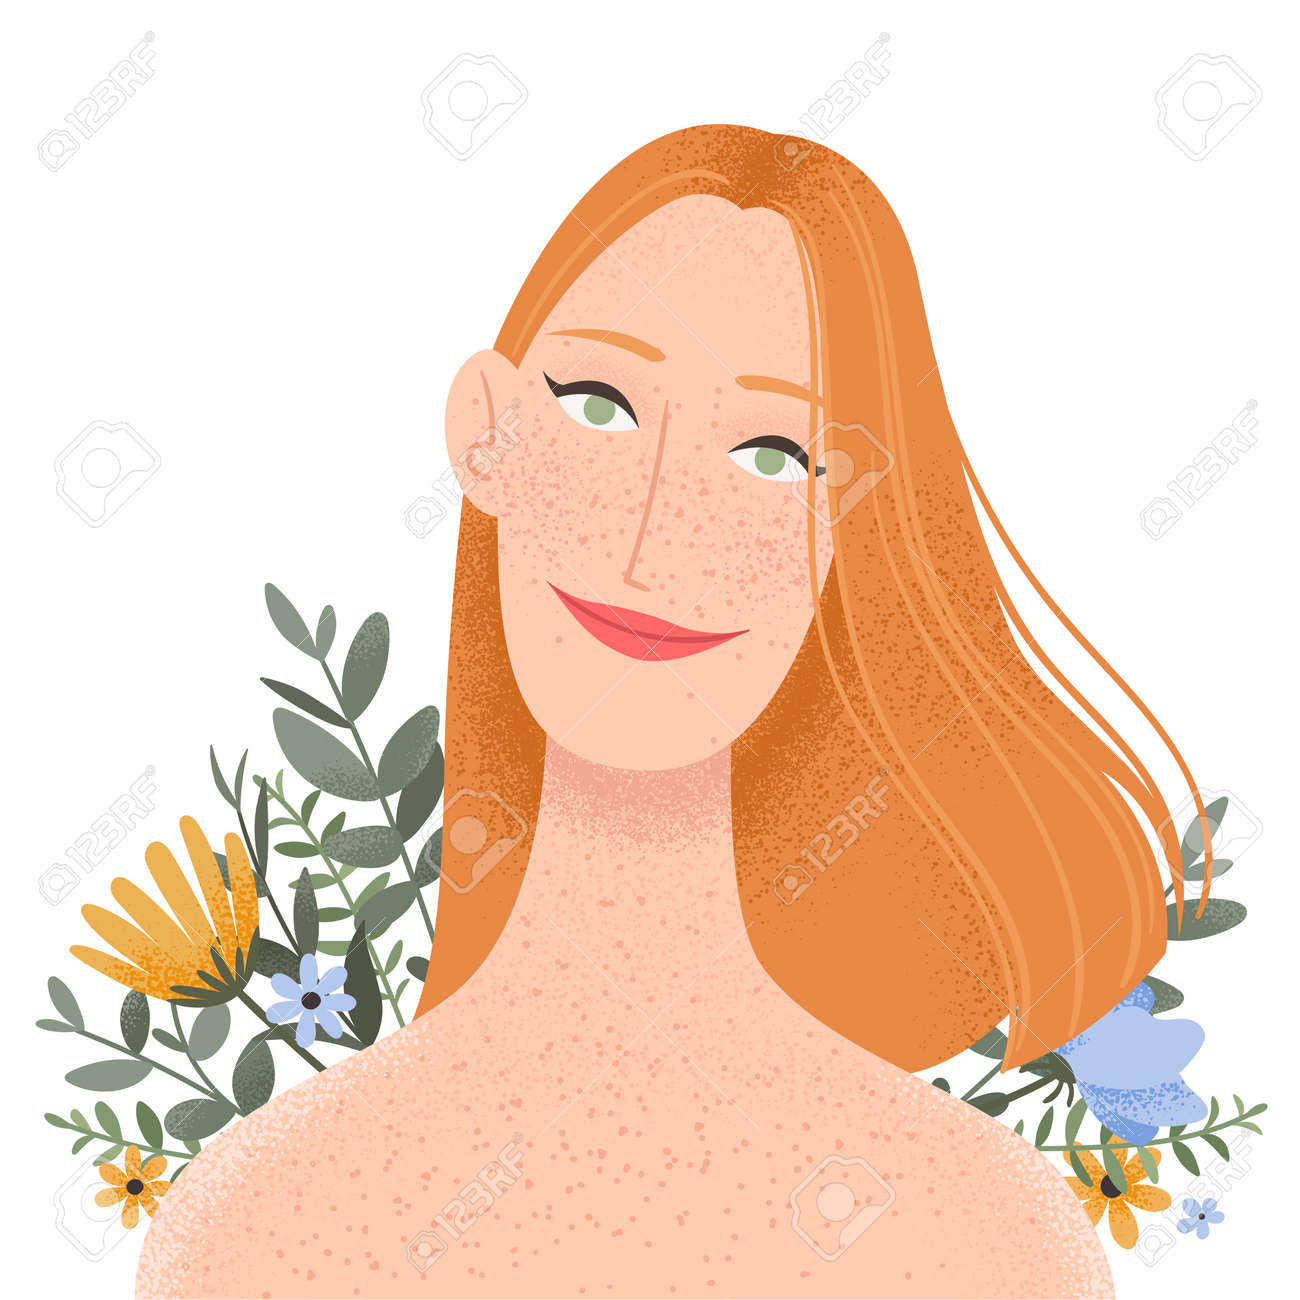 Beauty female portrait decorated with flowers. Elegant woman avatar with floral background. Vector illustration - 164624868